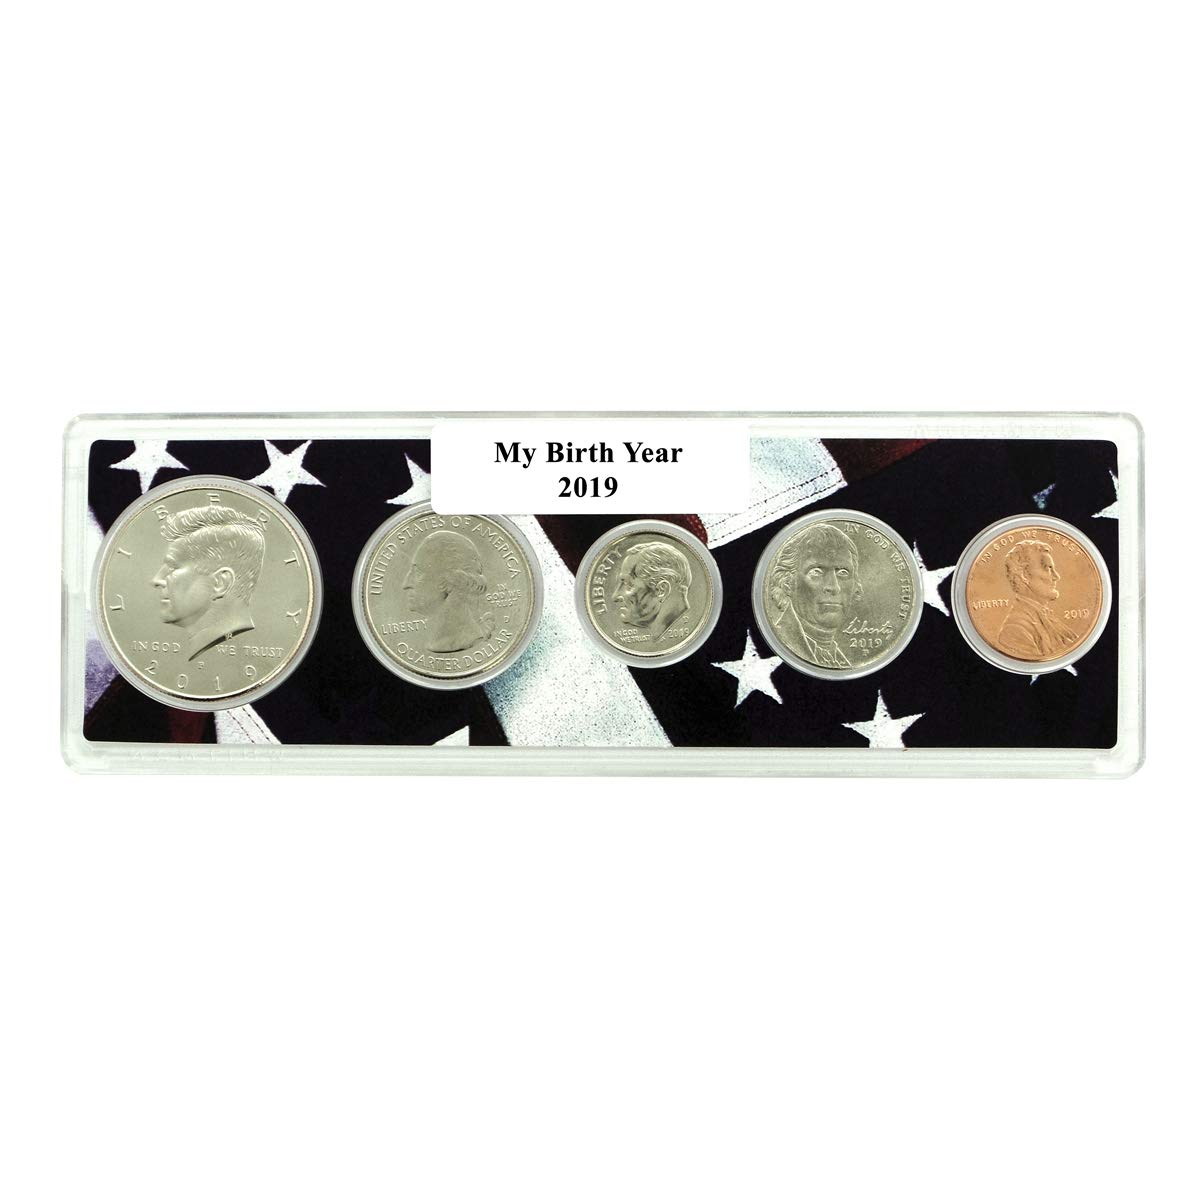 5 Coin Set 1984 Birth Year Coin Set in American Flag Holder